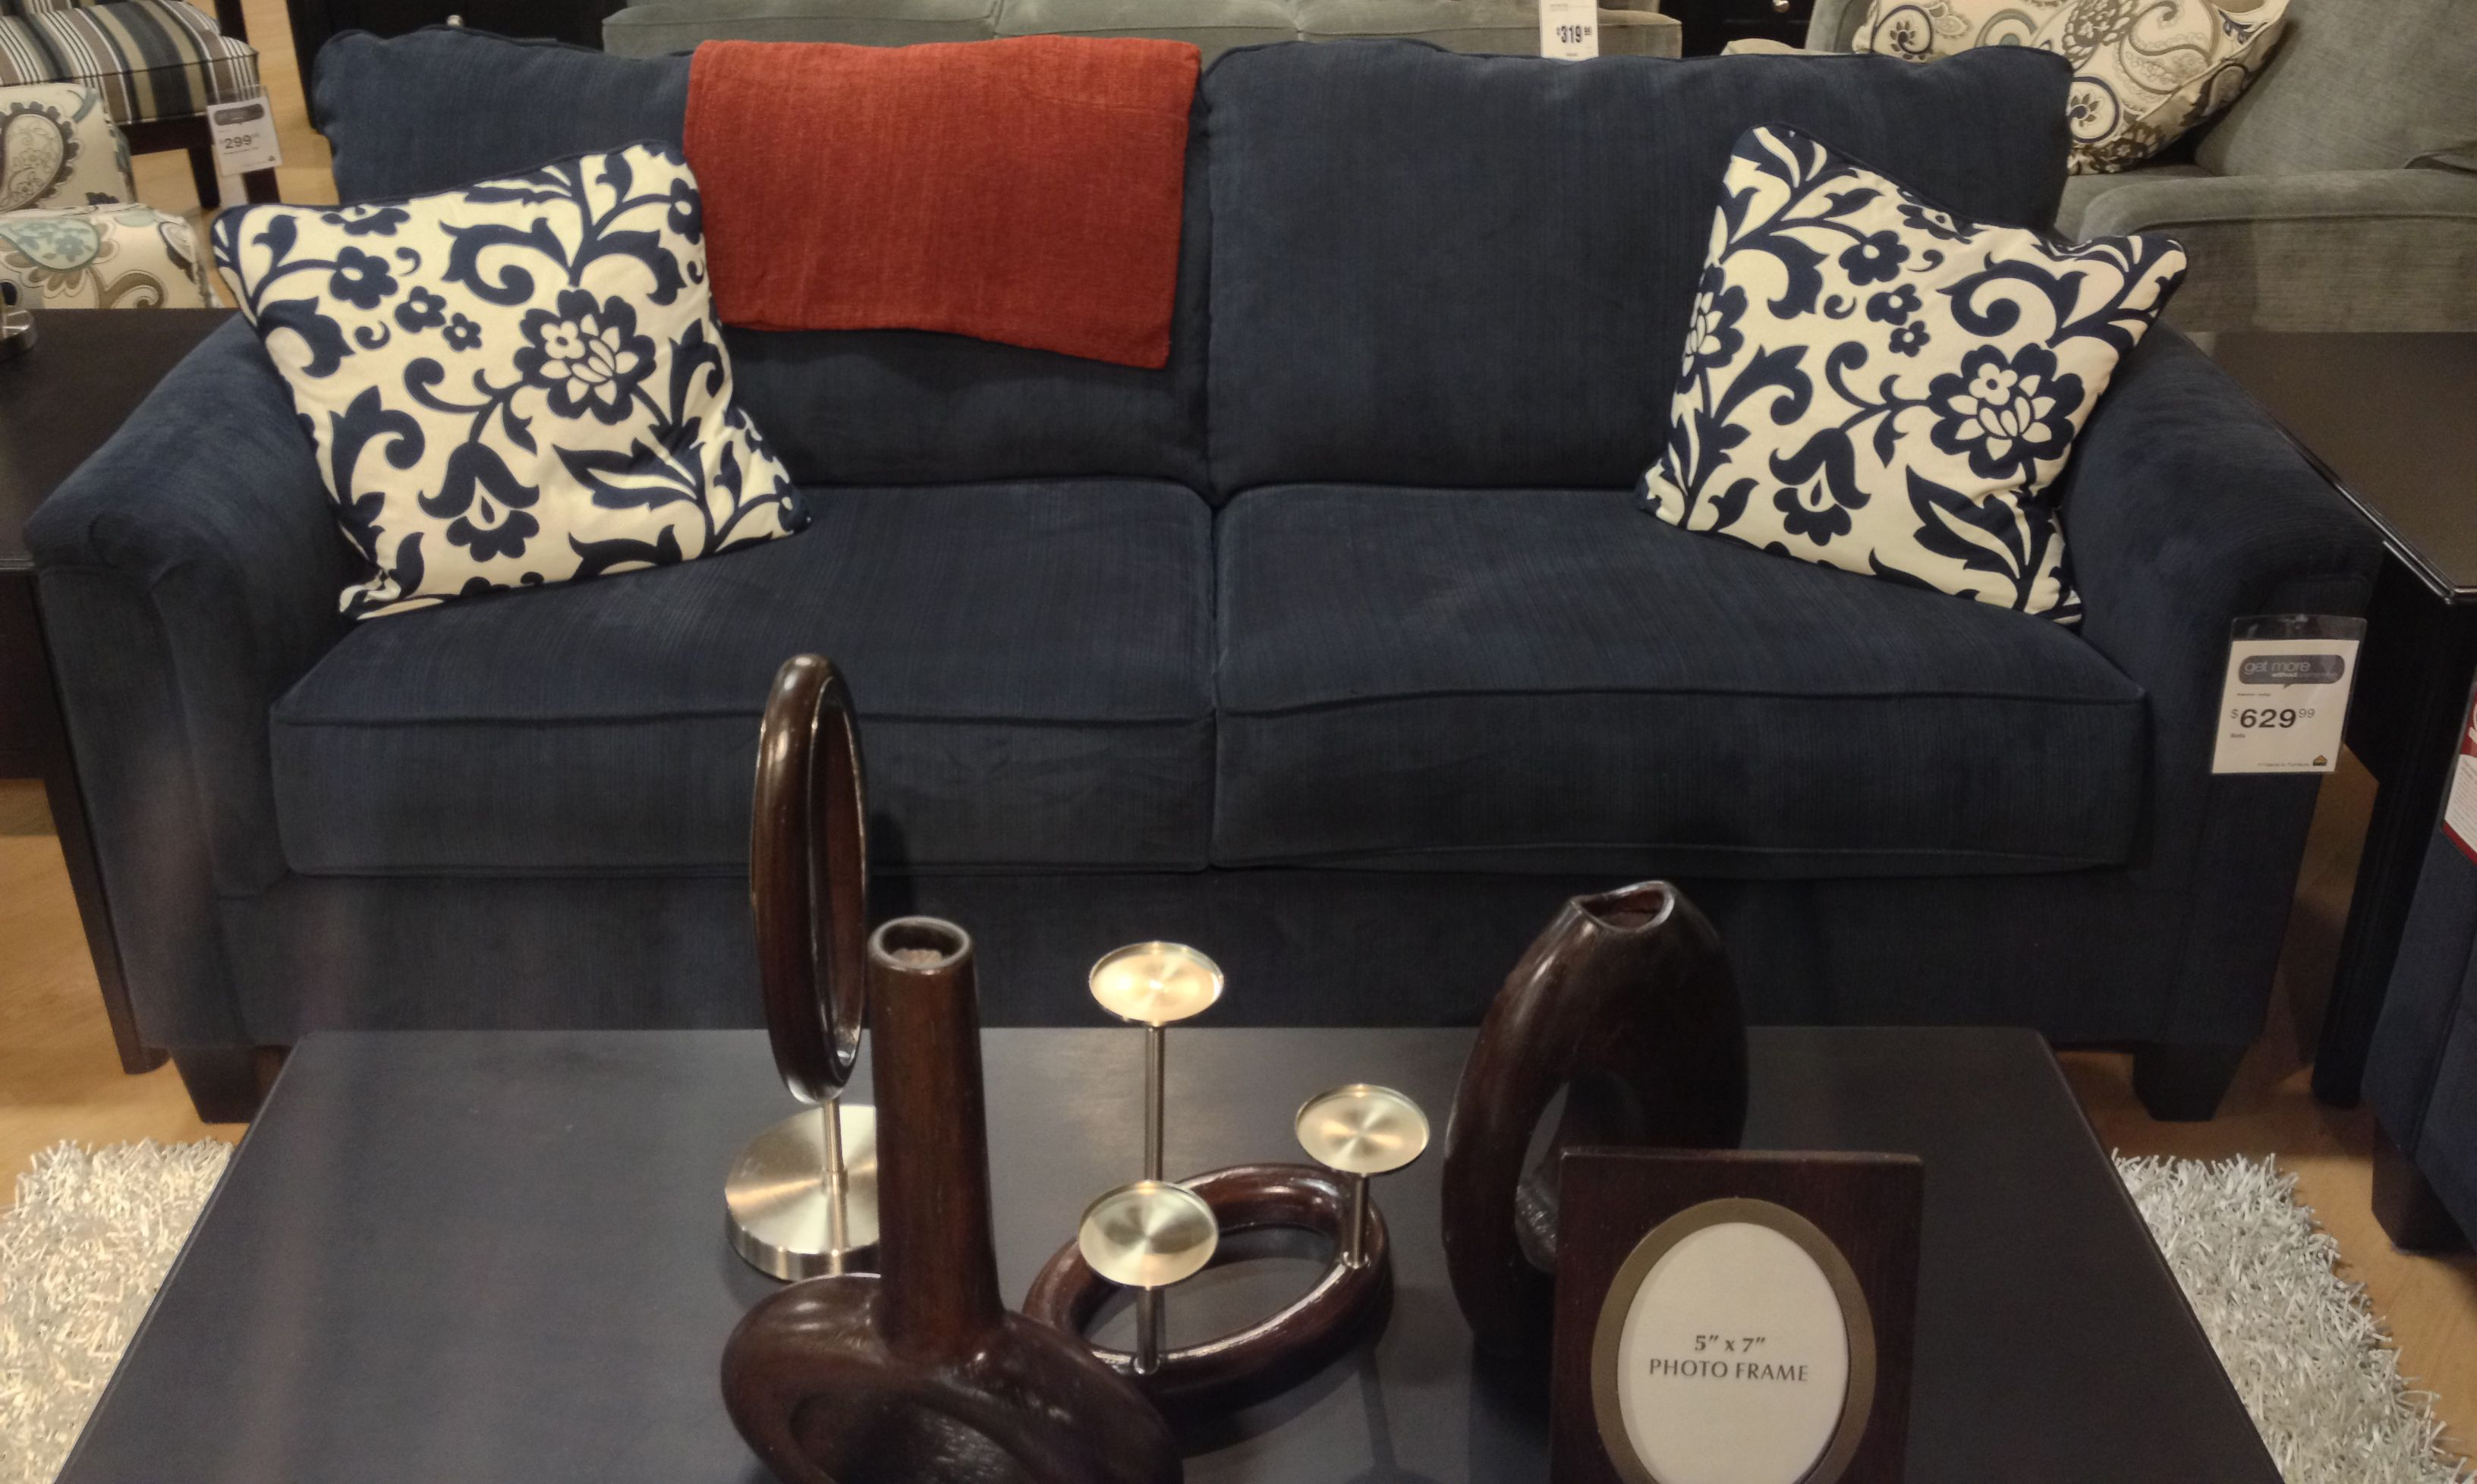 Keendre Indigo Sofa at Ashley Furniture in TriCities